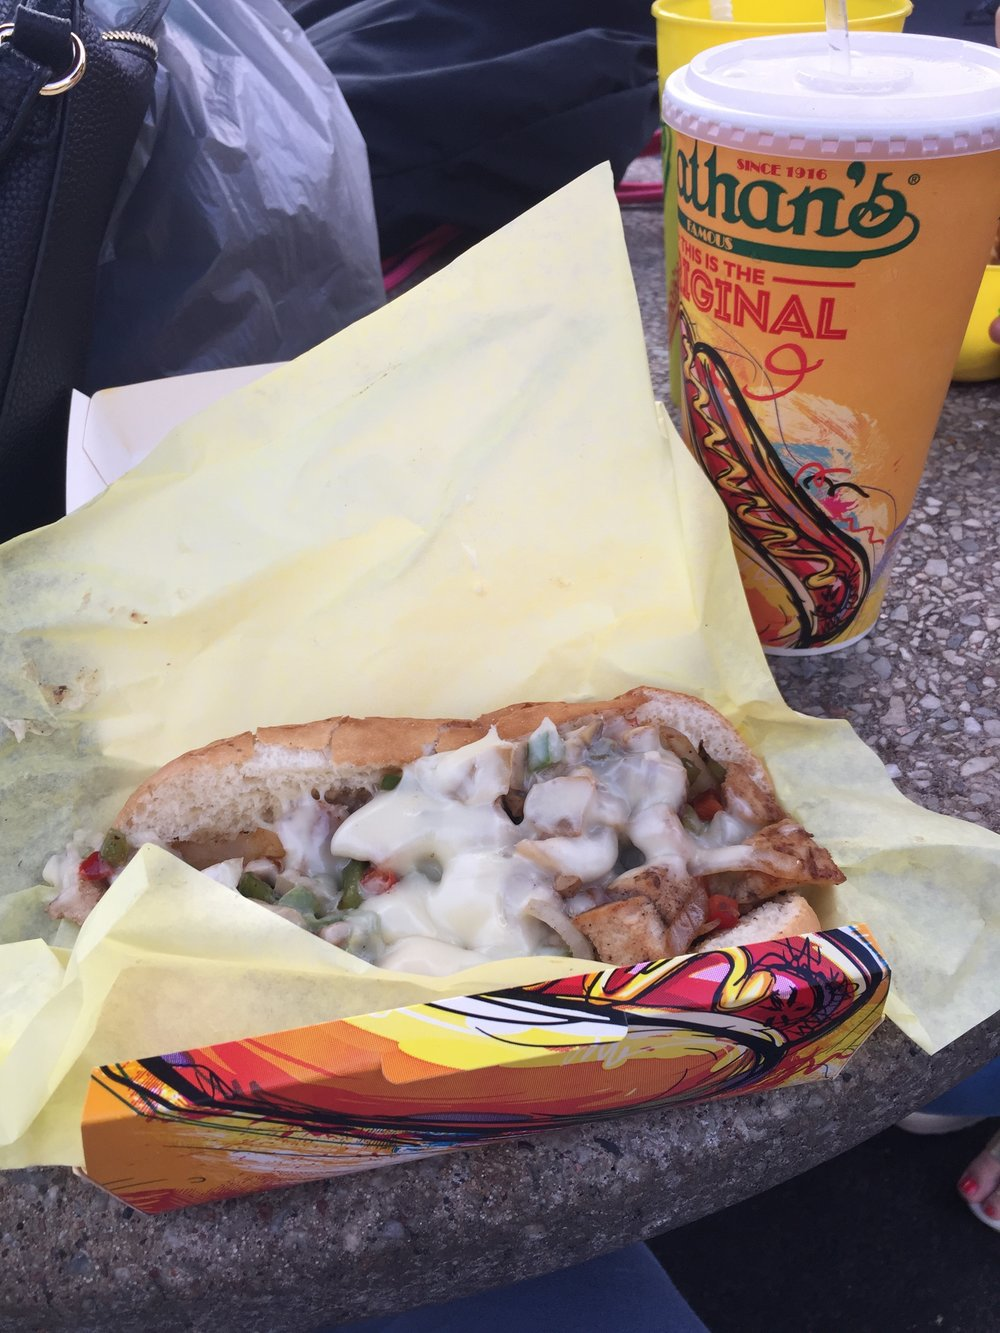 Aug 31– Kaitlin and I took a trip to Coney Island for a free showing of Beauty and the Beast on the beach! We stopped for dinner at Nathan's on the way. They're known for some rad hot dogs. I opted for the chicken philly and some lemonade. yummmm.